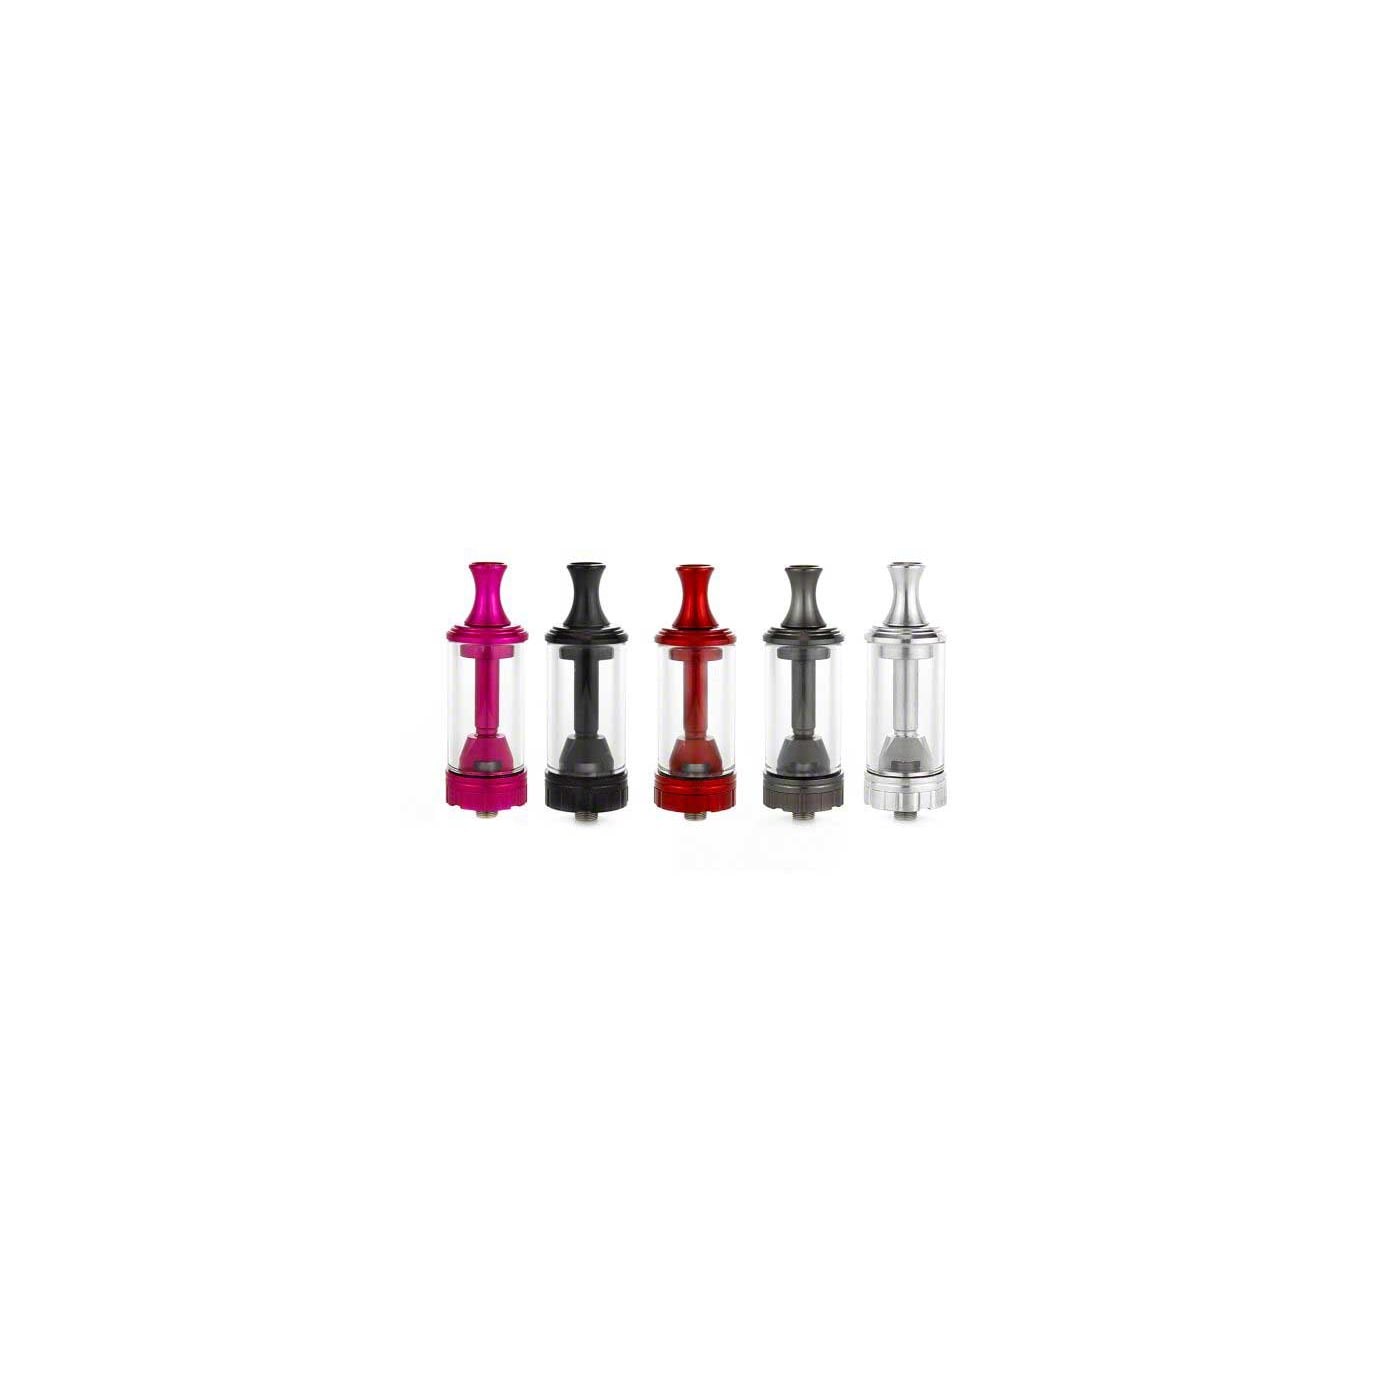 Surric Replaceable Atomizer Tank Colors